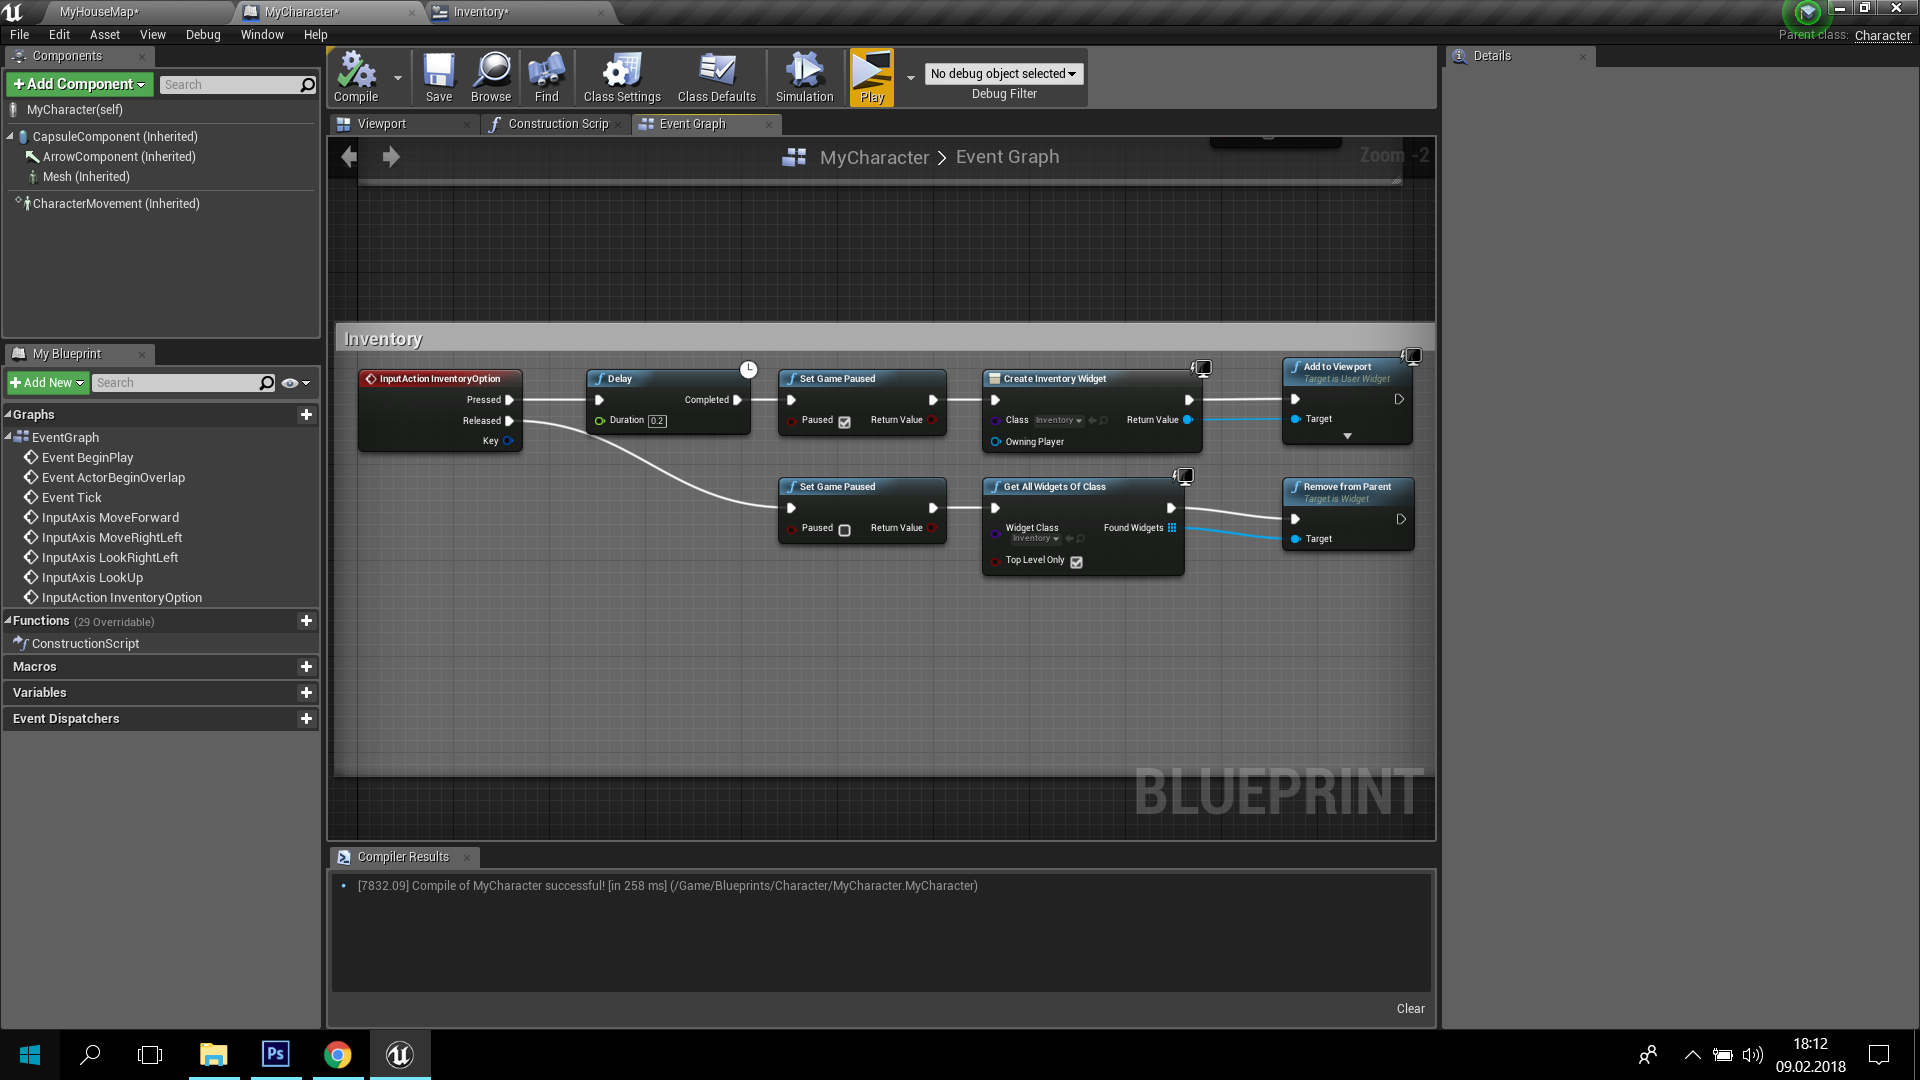 Characterblueprint.png PlusPng.com  - Inventory PNG HD